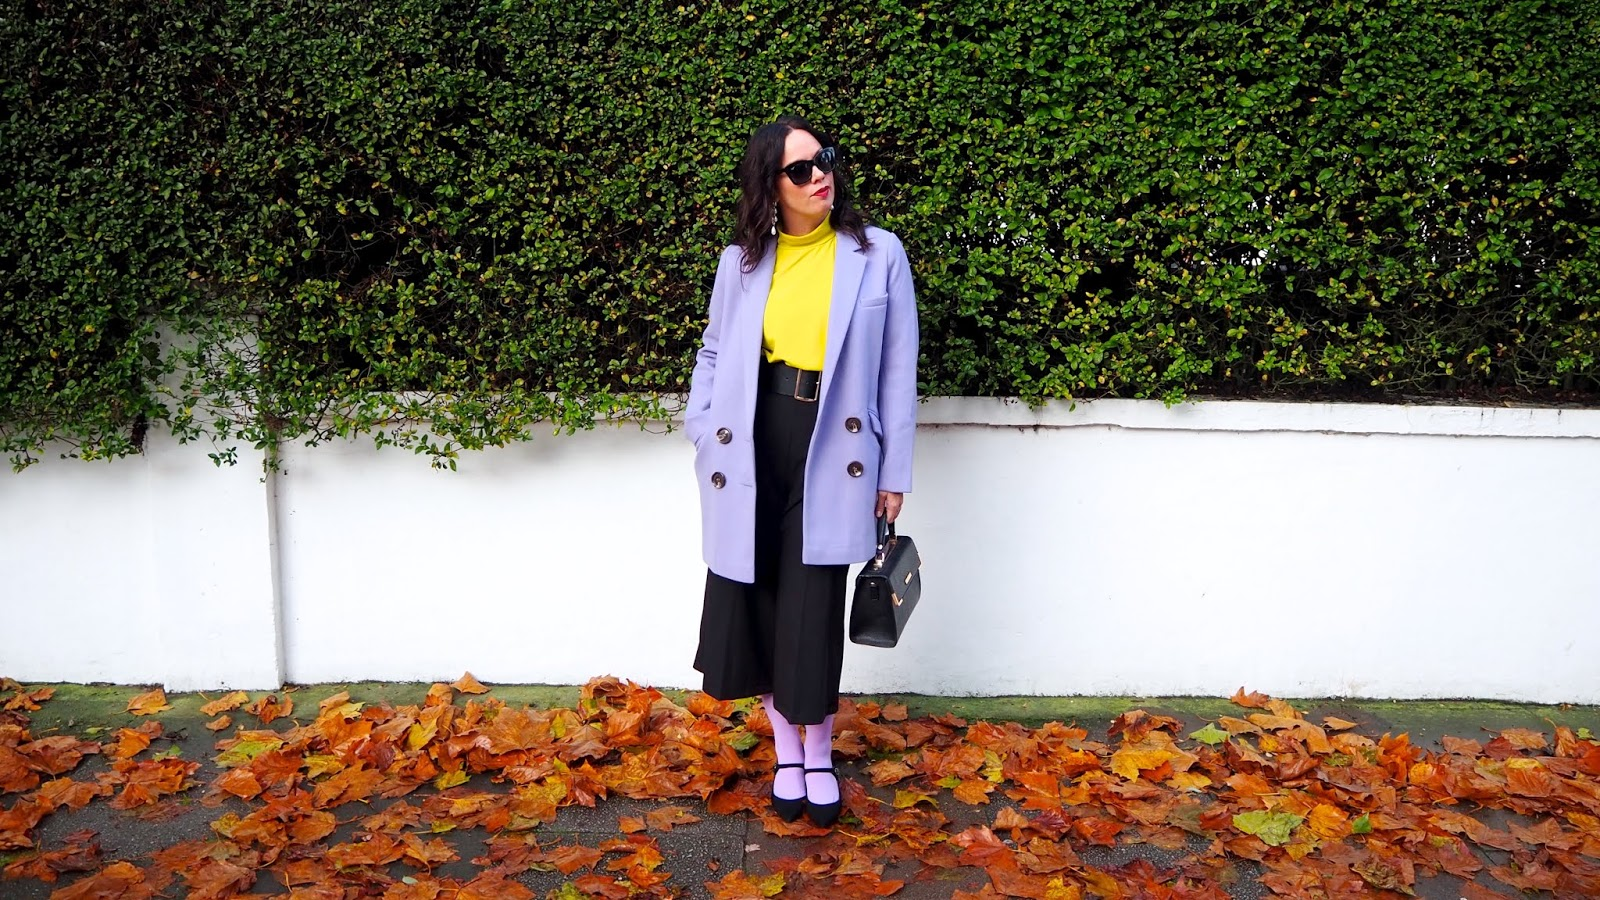 Lilac double breasted coat with yellow blouse, lilac tights, black culottes and black maryjane heels